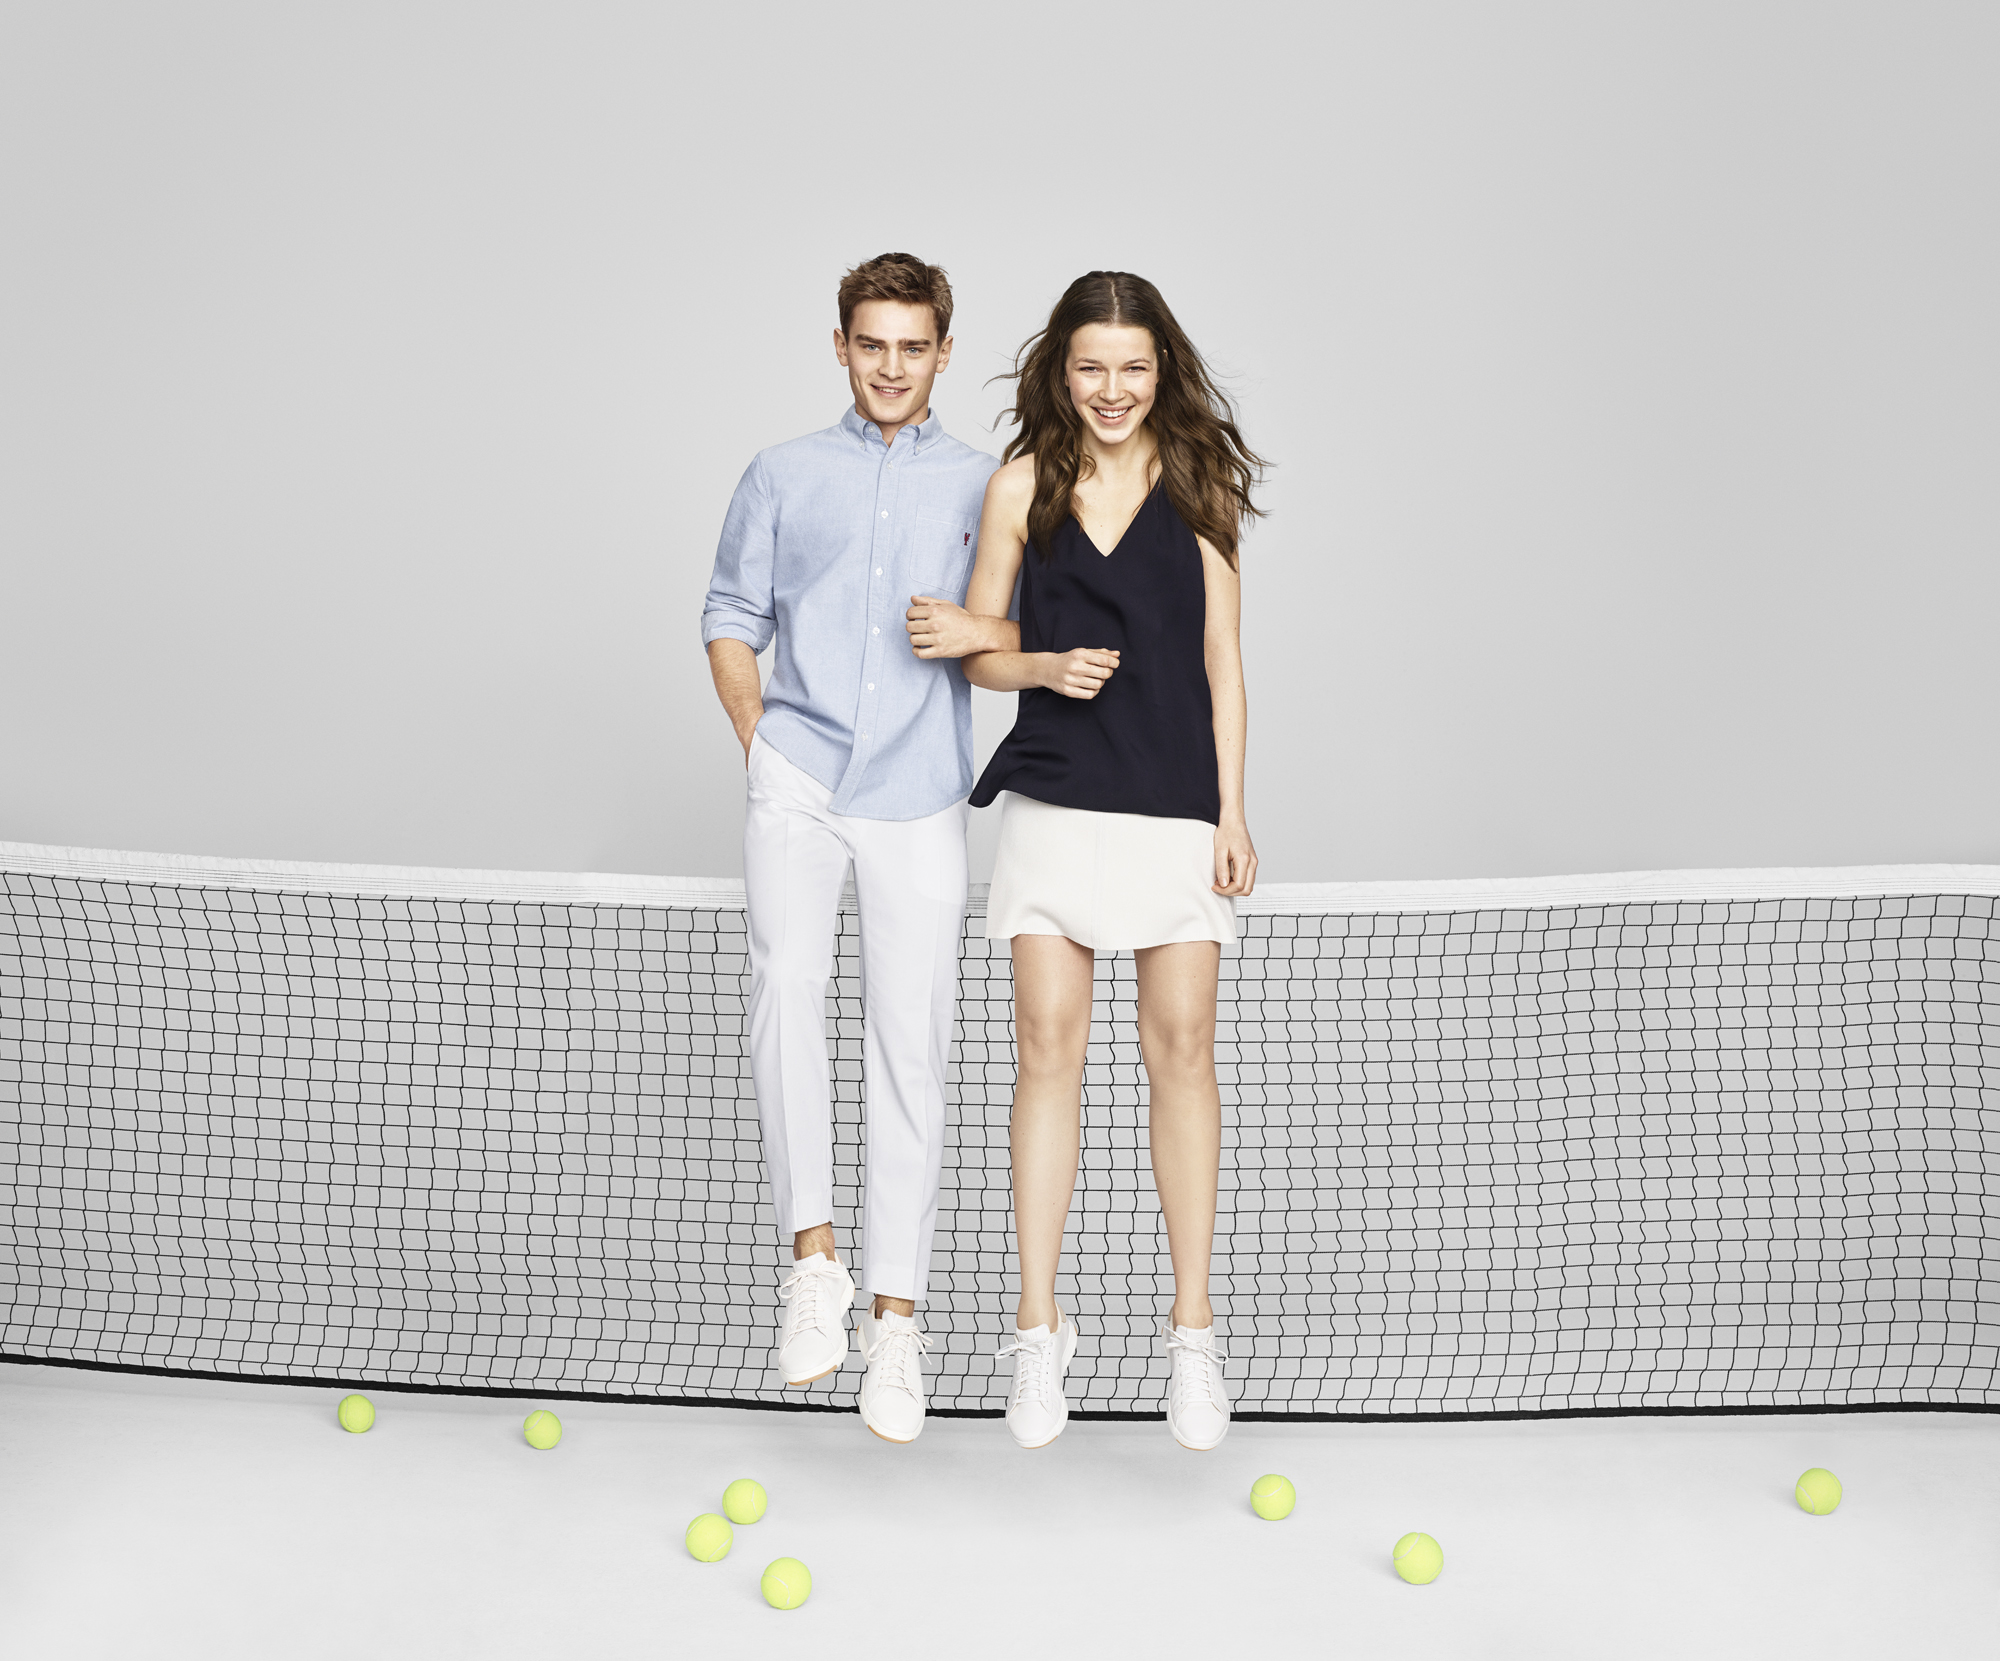 Cole Haan launches new tennis shoe